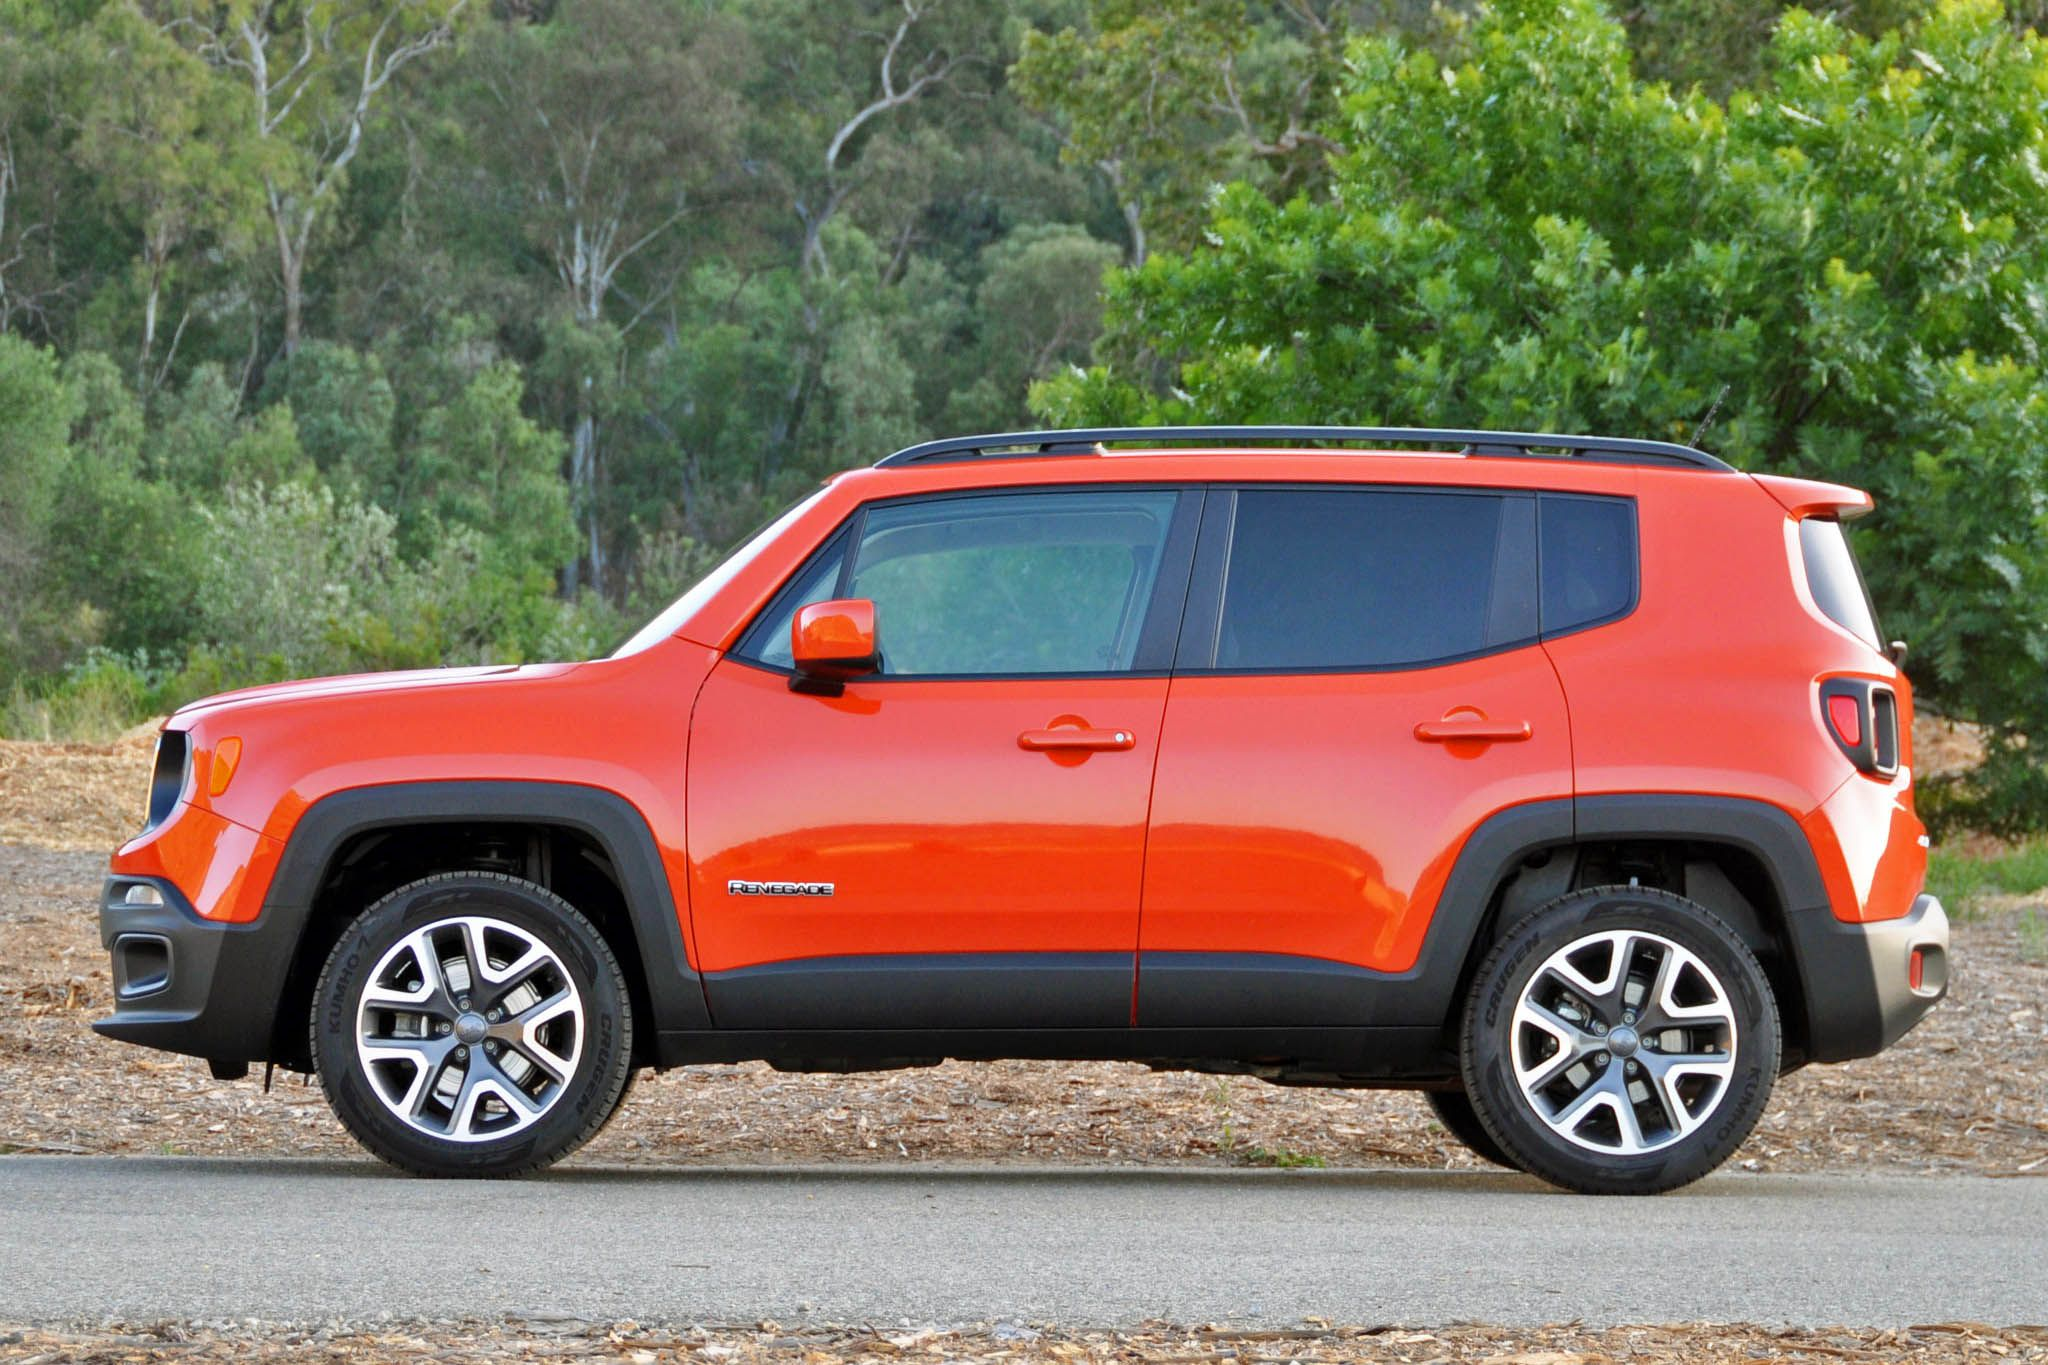 Jeep Renegade Orange >> Jeep Omaha Orange Jeep Renegade Jeep Orange Crush